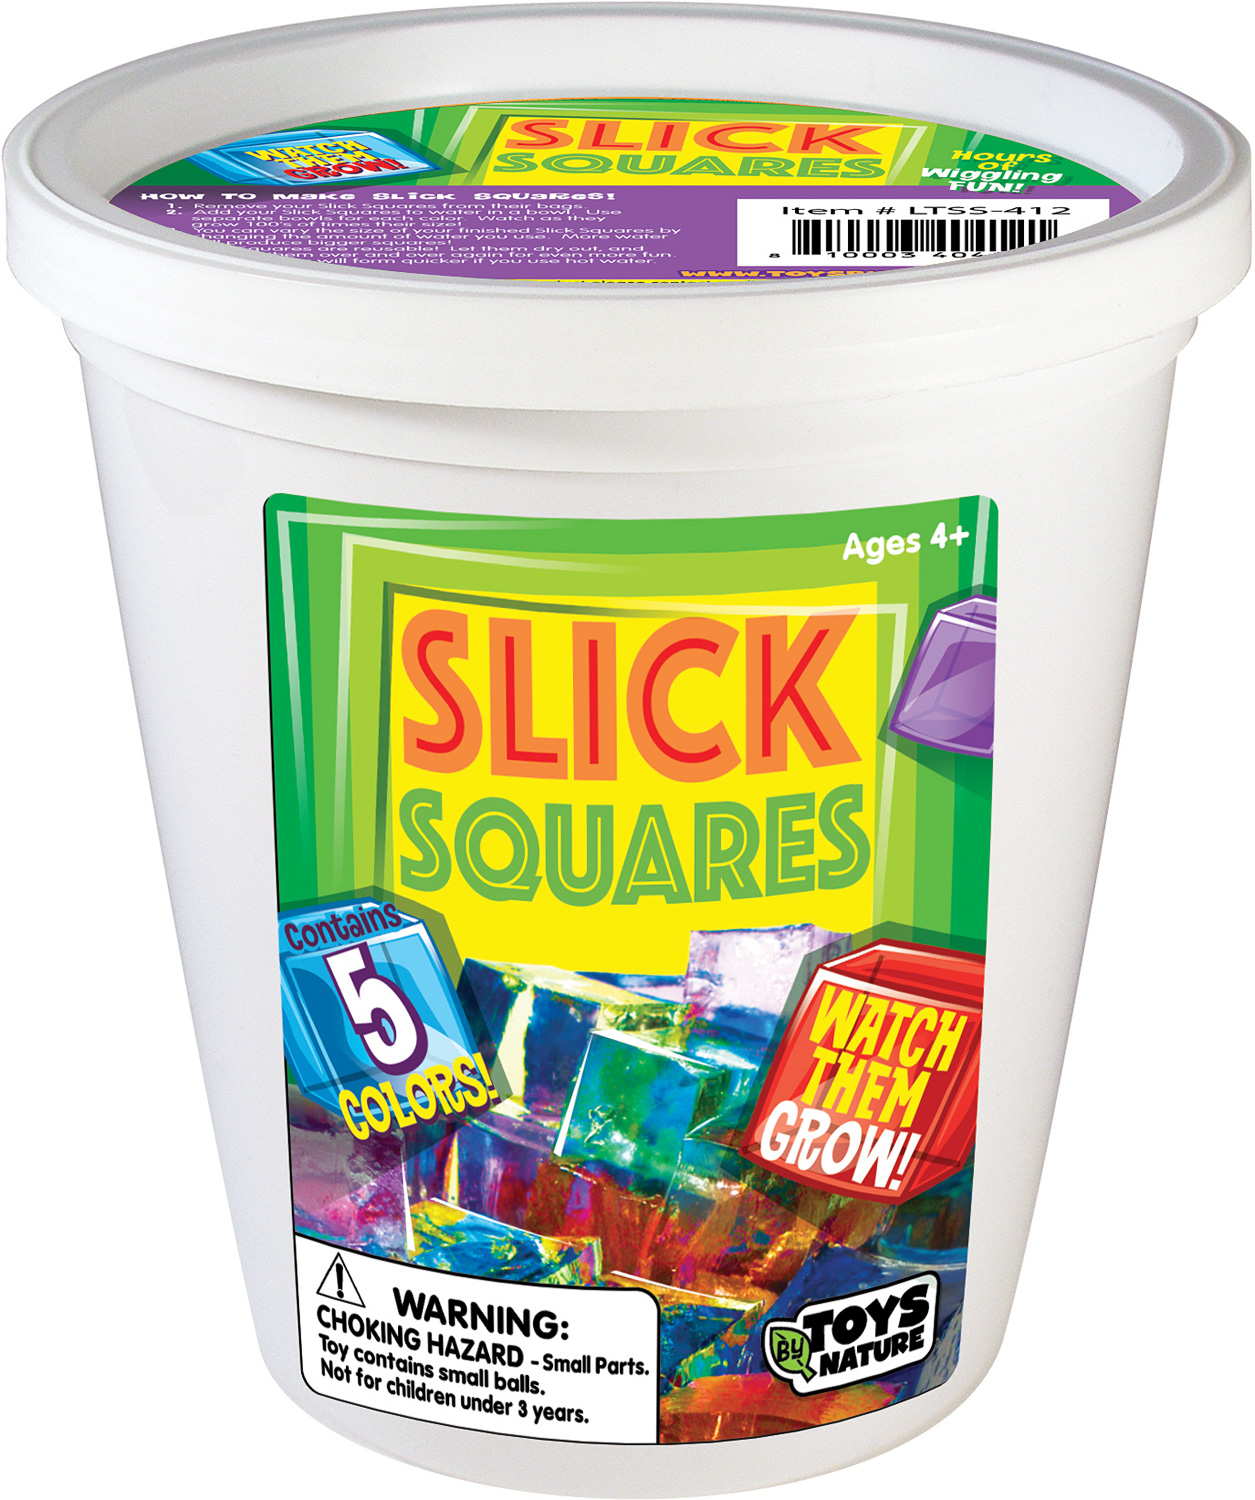 1/4 Pound Colored Slick Squares